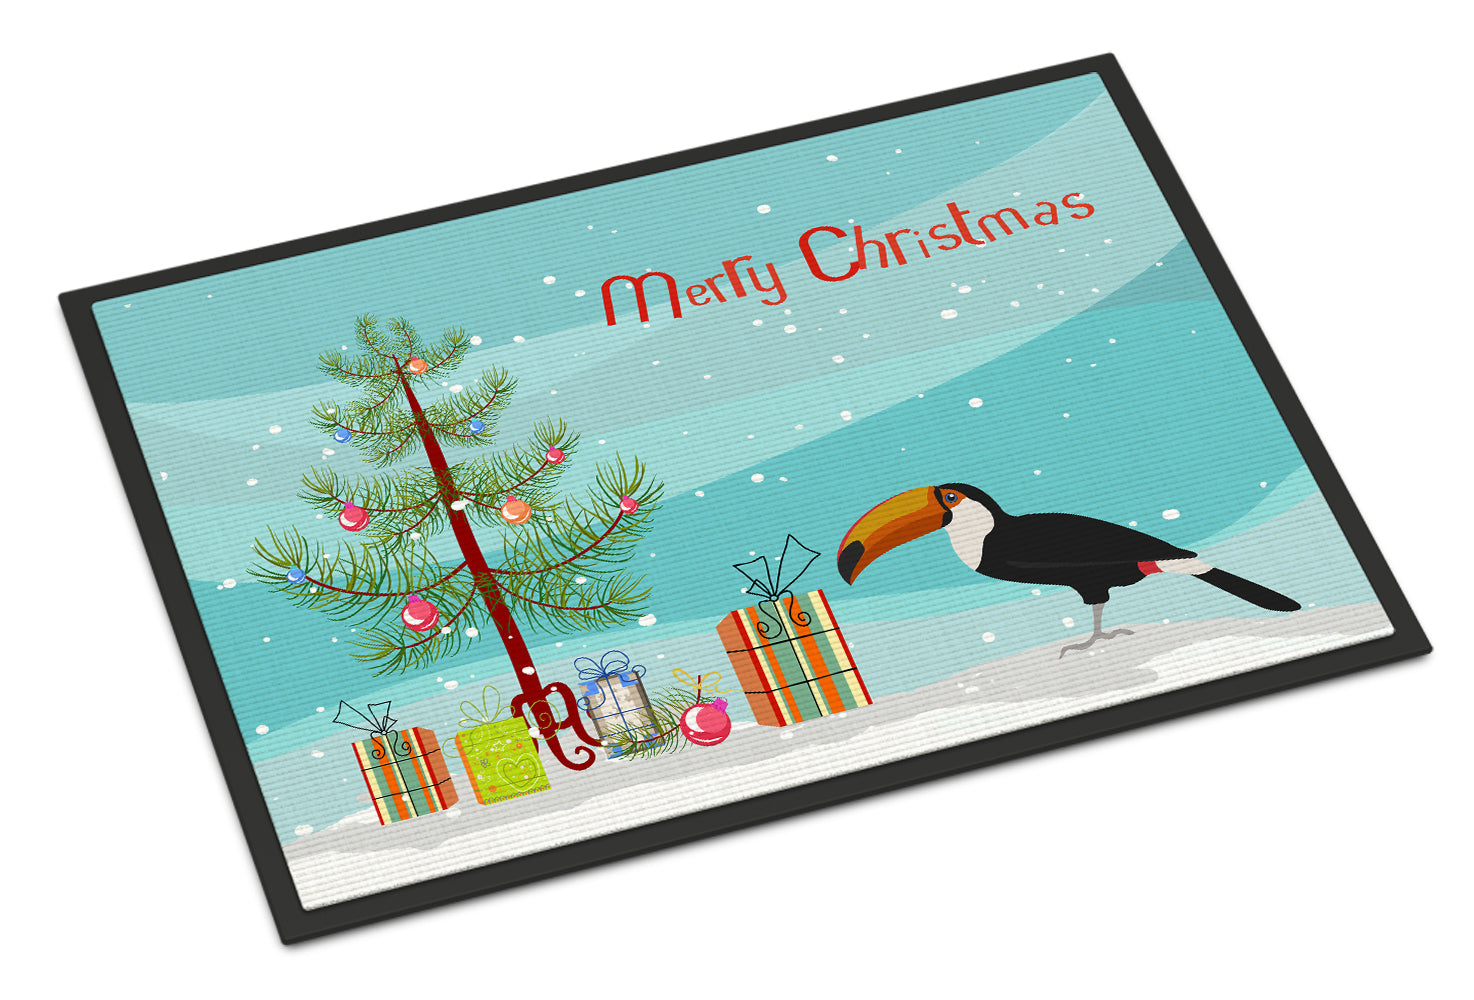 Toucan Merry Christmas Indoor or Outdoor Mat 18x27 CK4494MAT by Caroline's Treasures